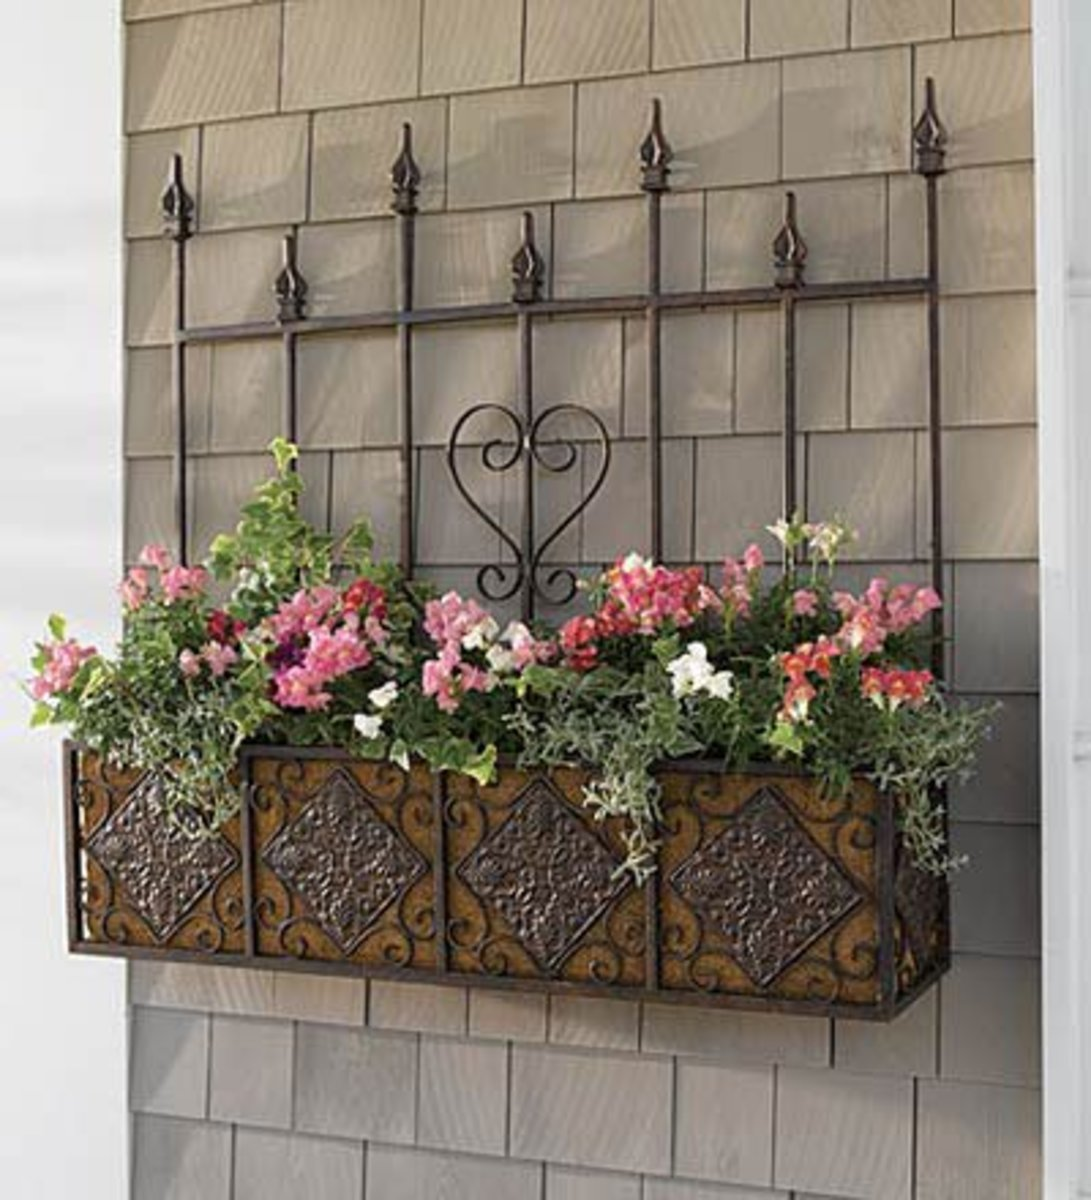 An ideal solution for a wall that has no windows, but needs a bit of decoration!